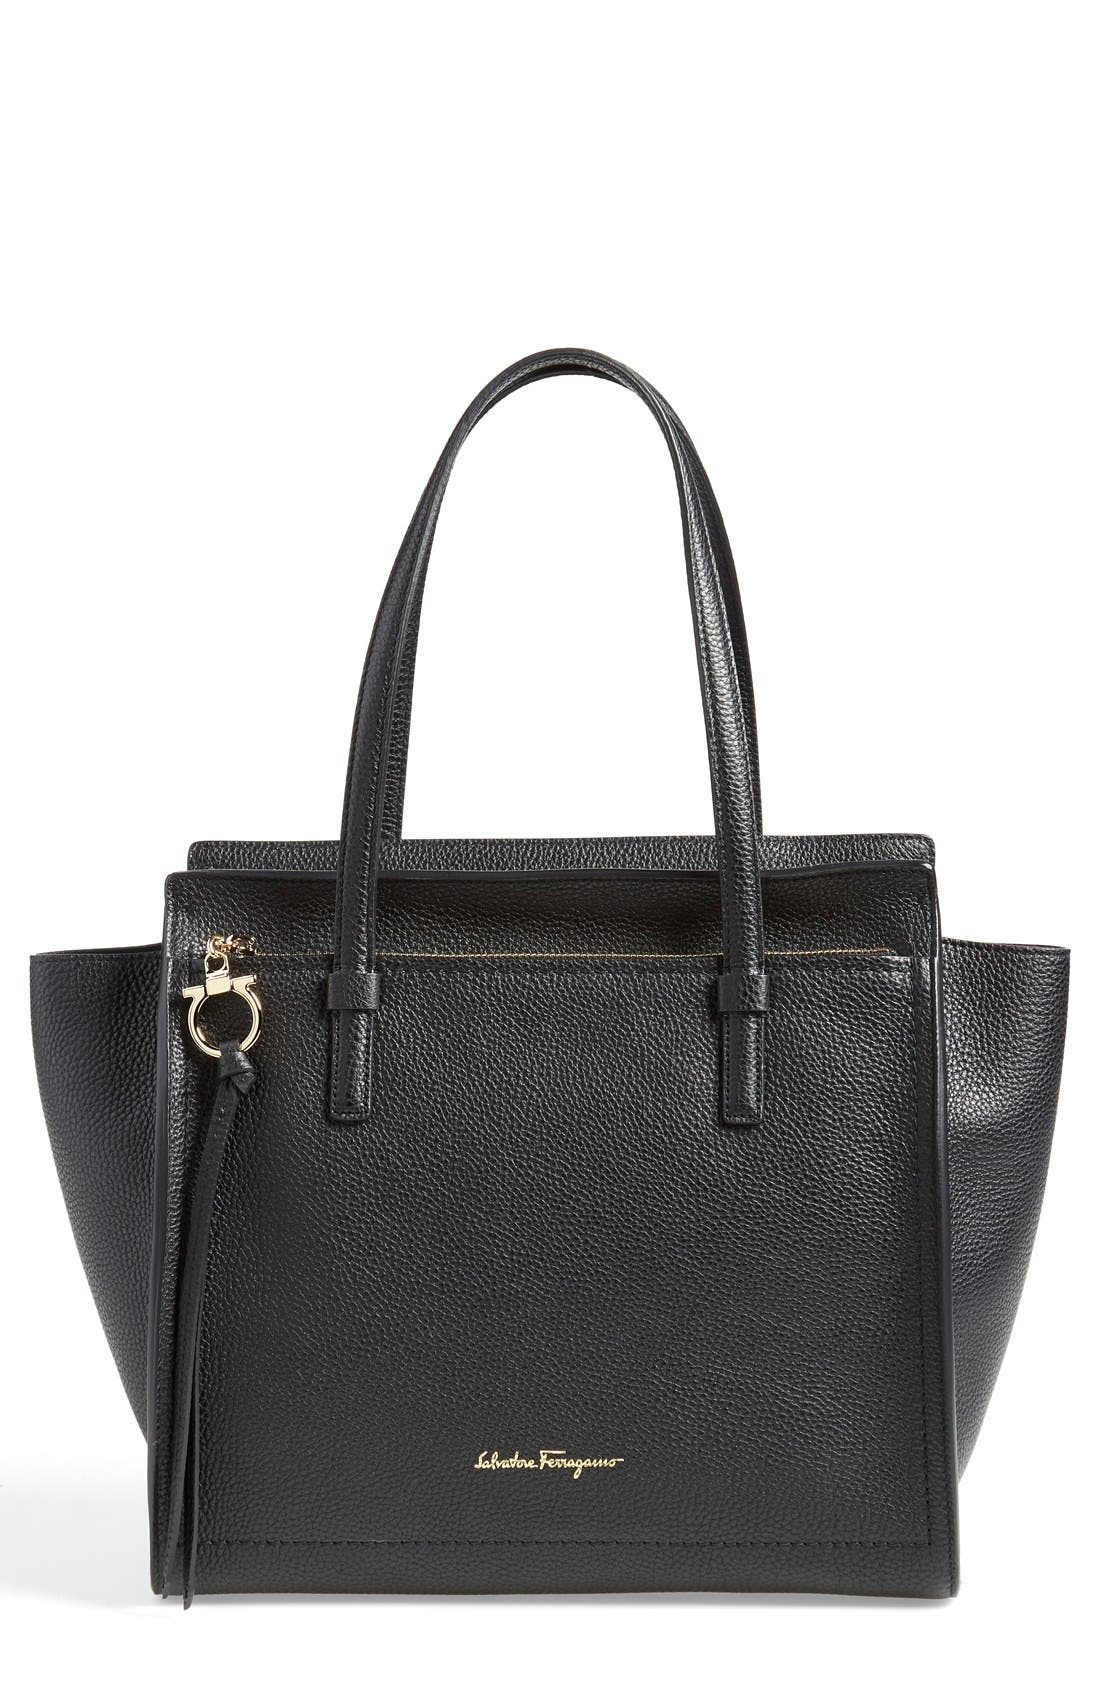 SALVATORE FERRAGAMO 'Small Amy' Calfskin Tote